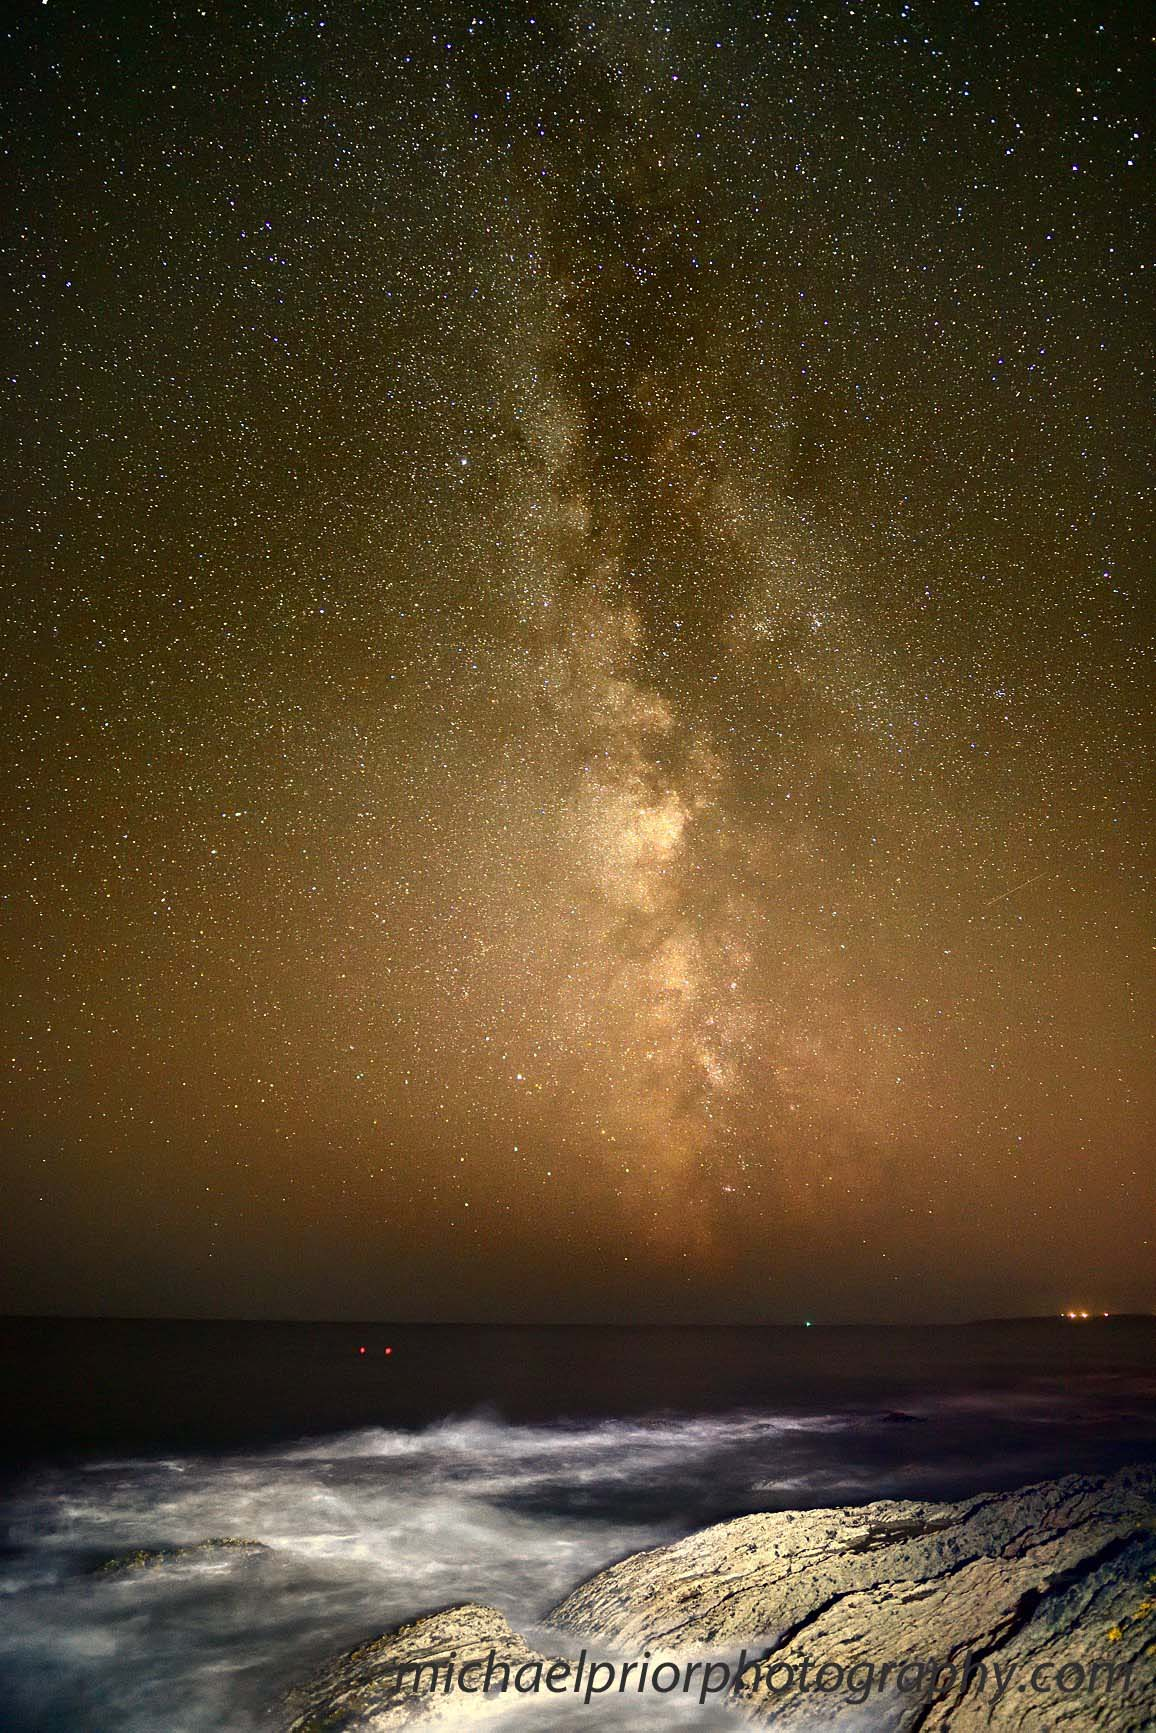 The Milkyway From West Of Garretstown In West Cork